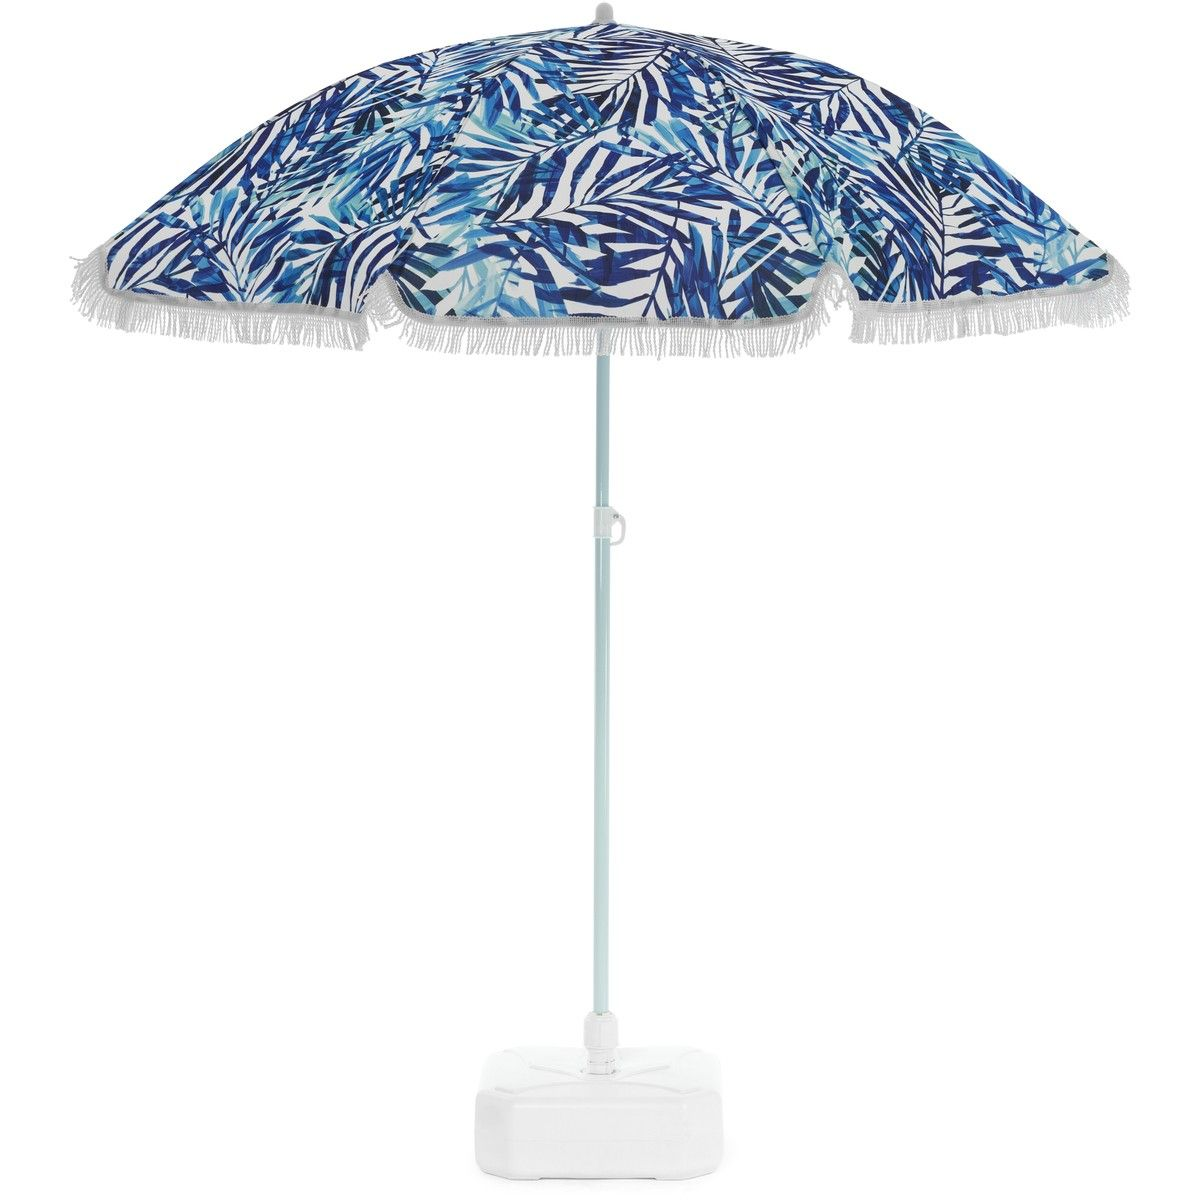 Life Beach Umbrella 1.8m BIG W